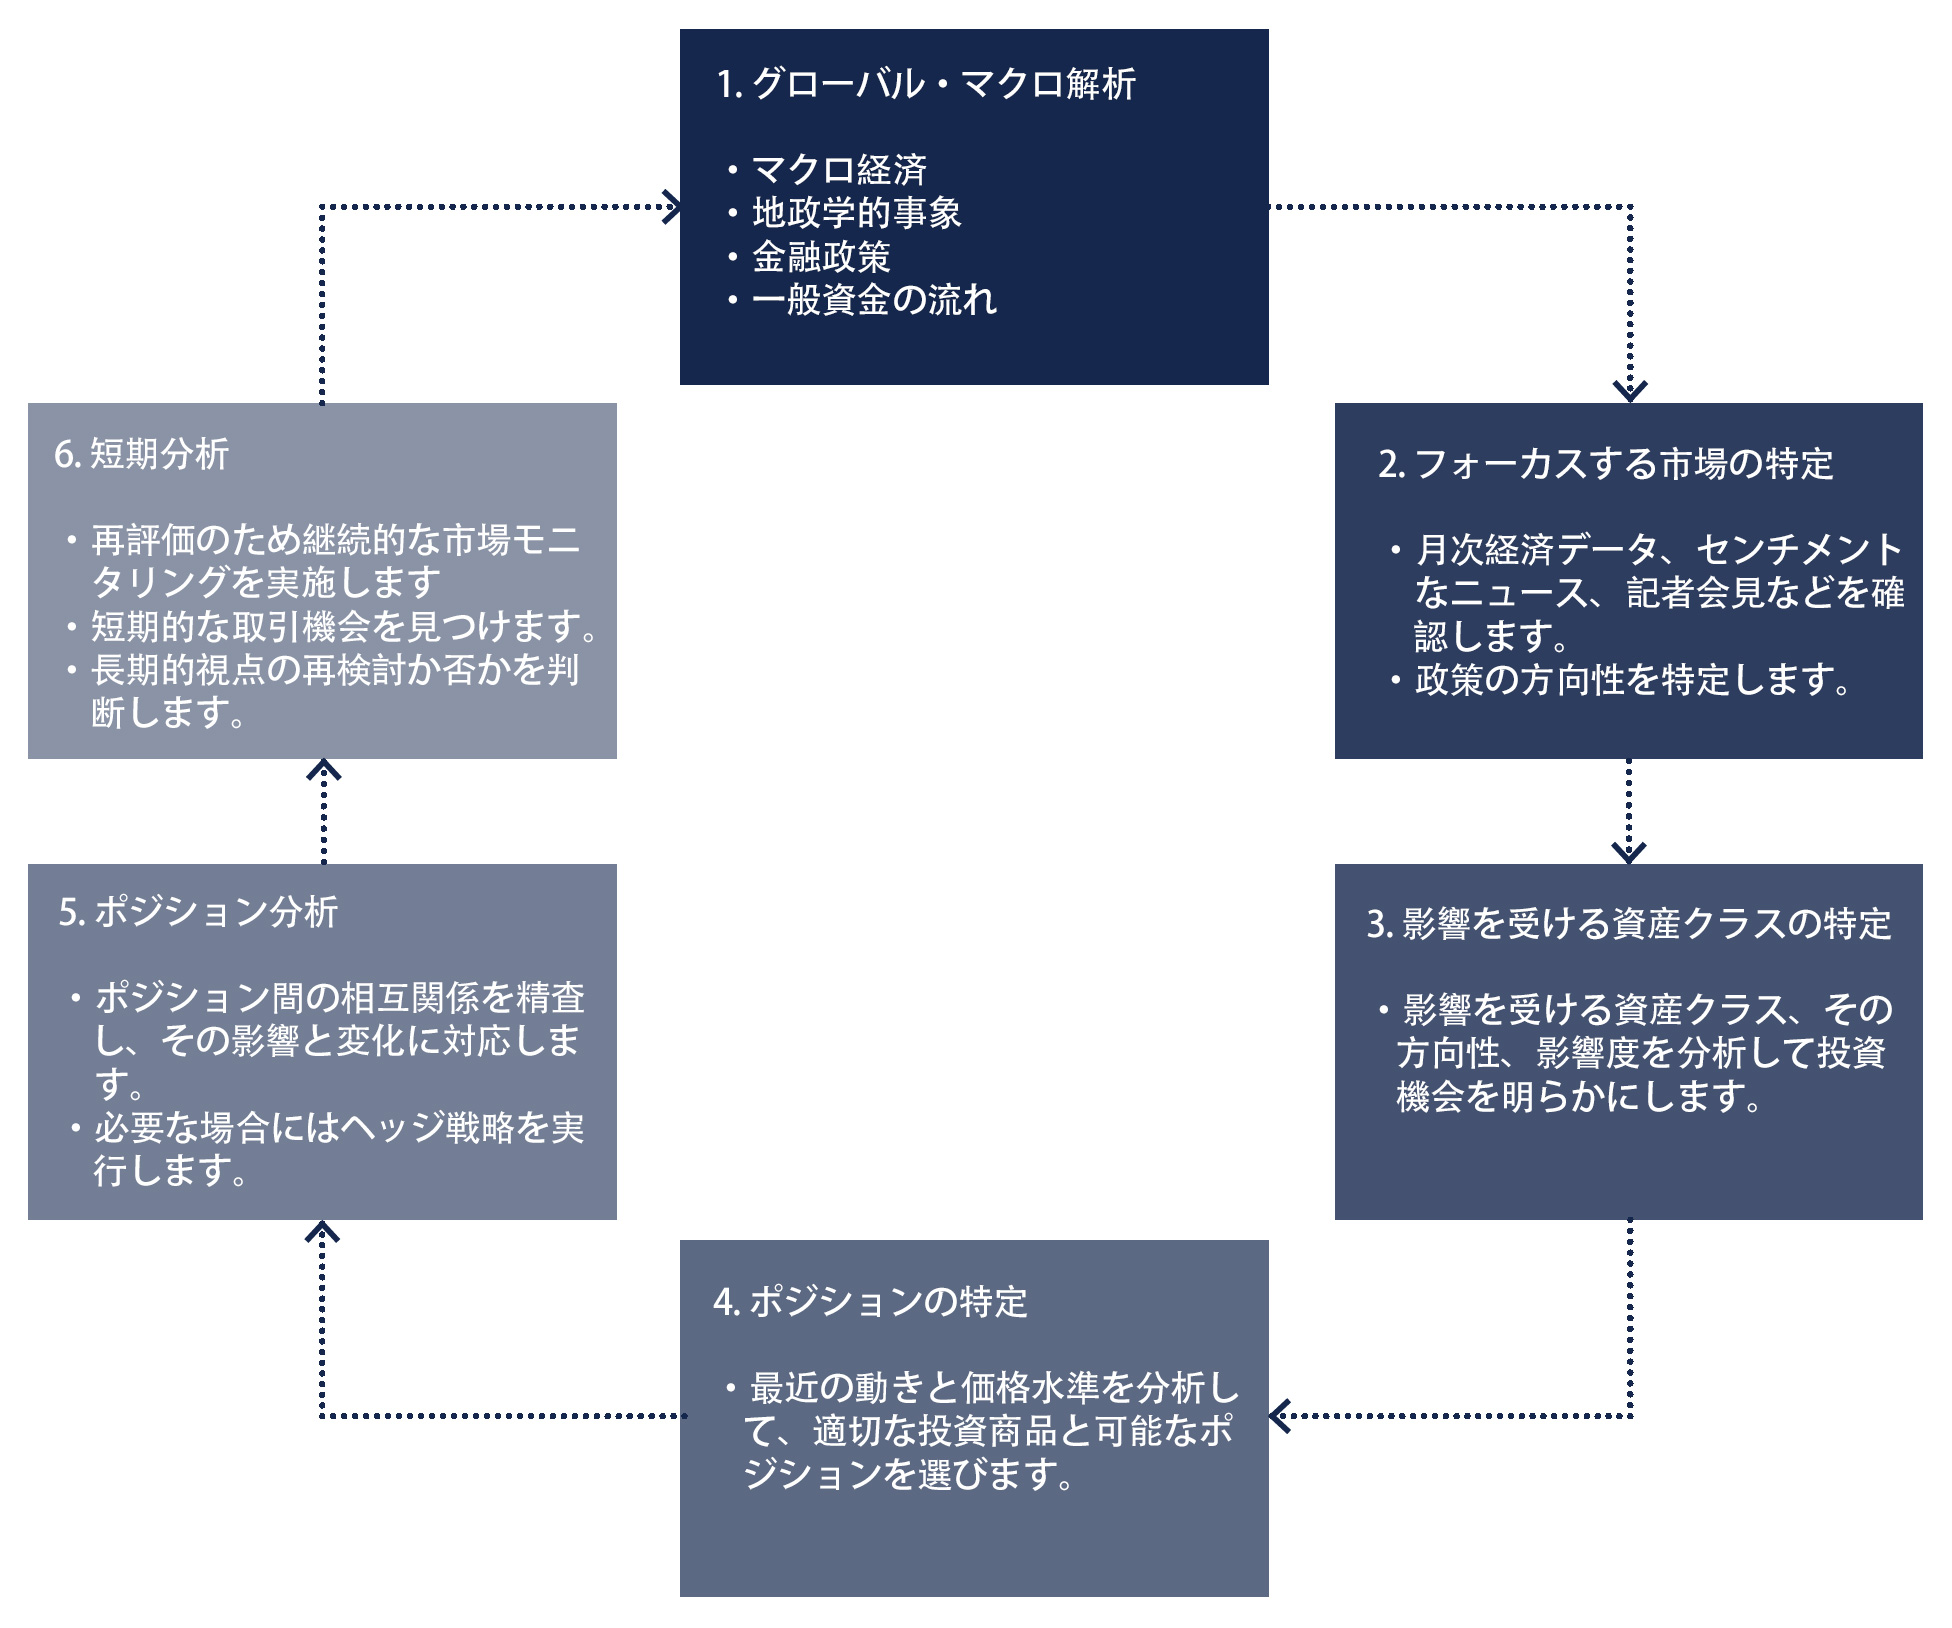 cp-global-long-term-short-term-investment-view-analysis-japanese